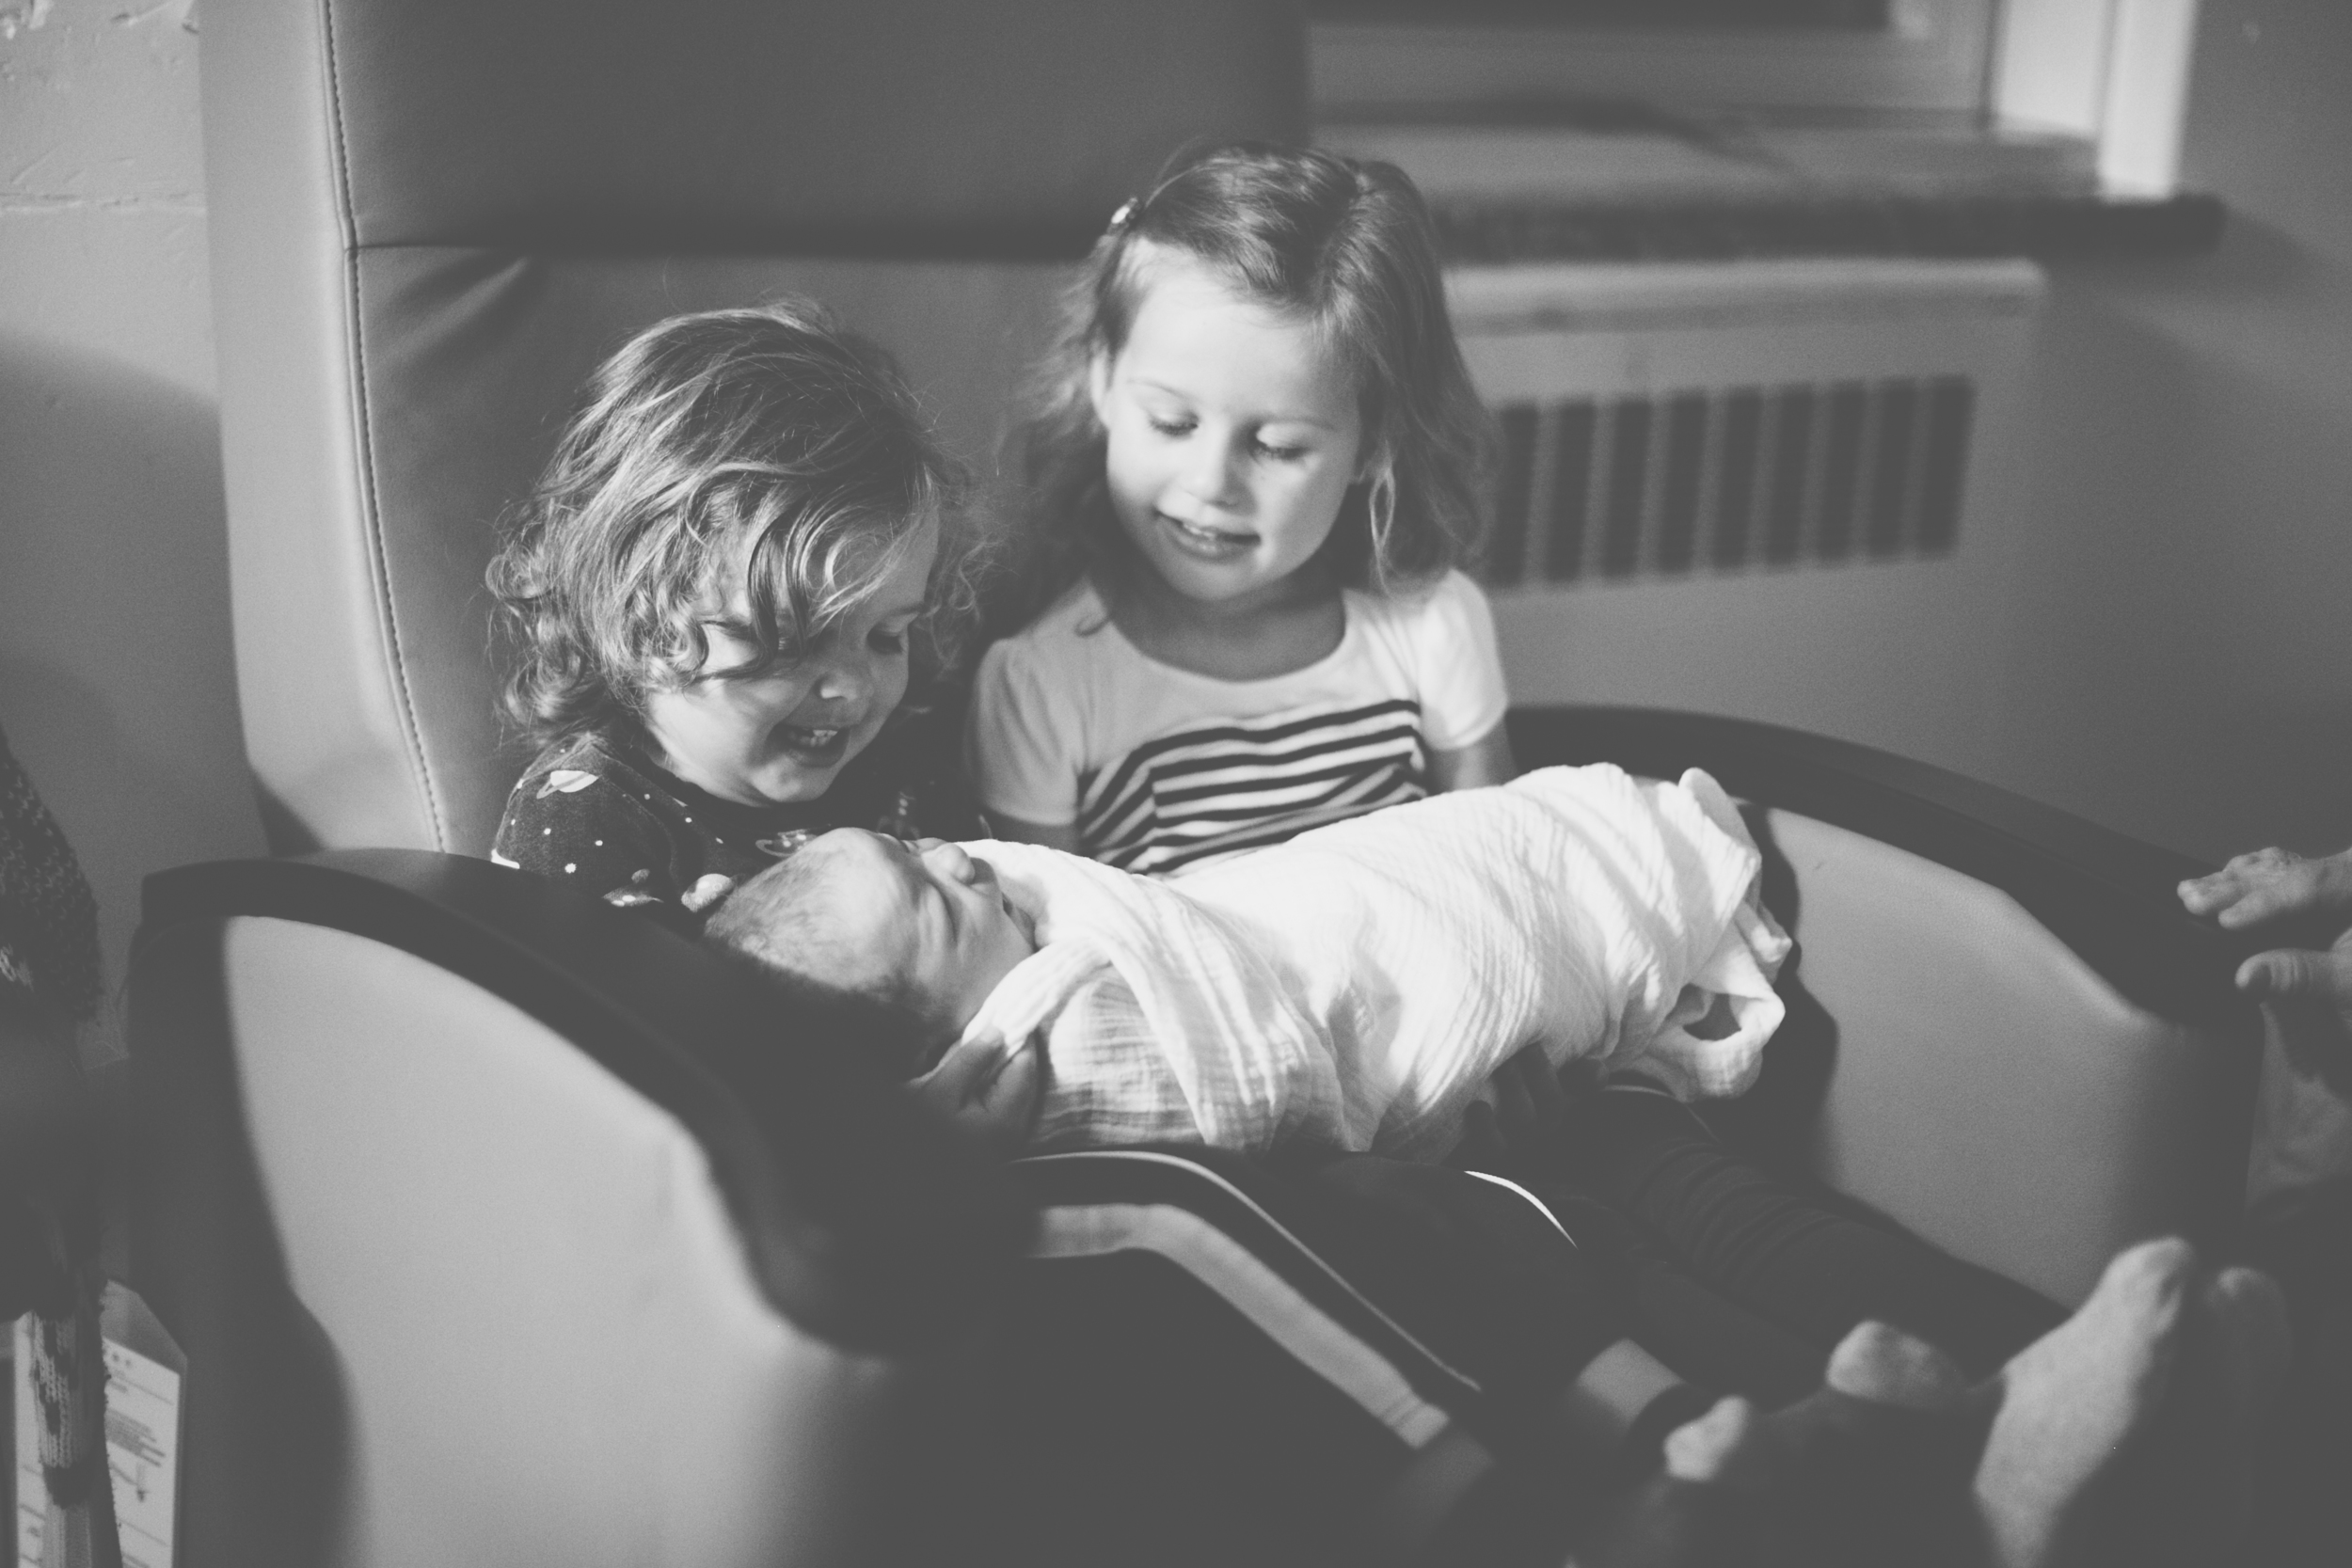 Our kid lets meeting their new brother. Probably one of my fav moments to date.photo credit: deMo Photography - moi